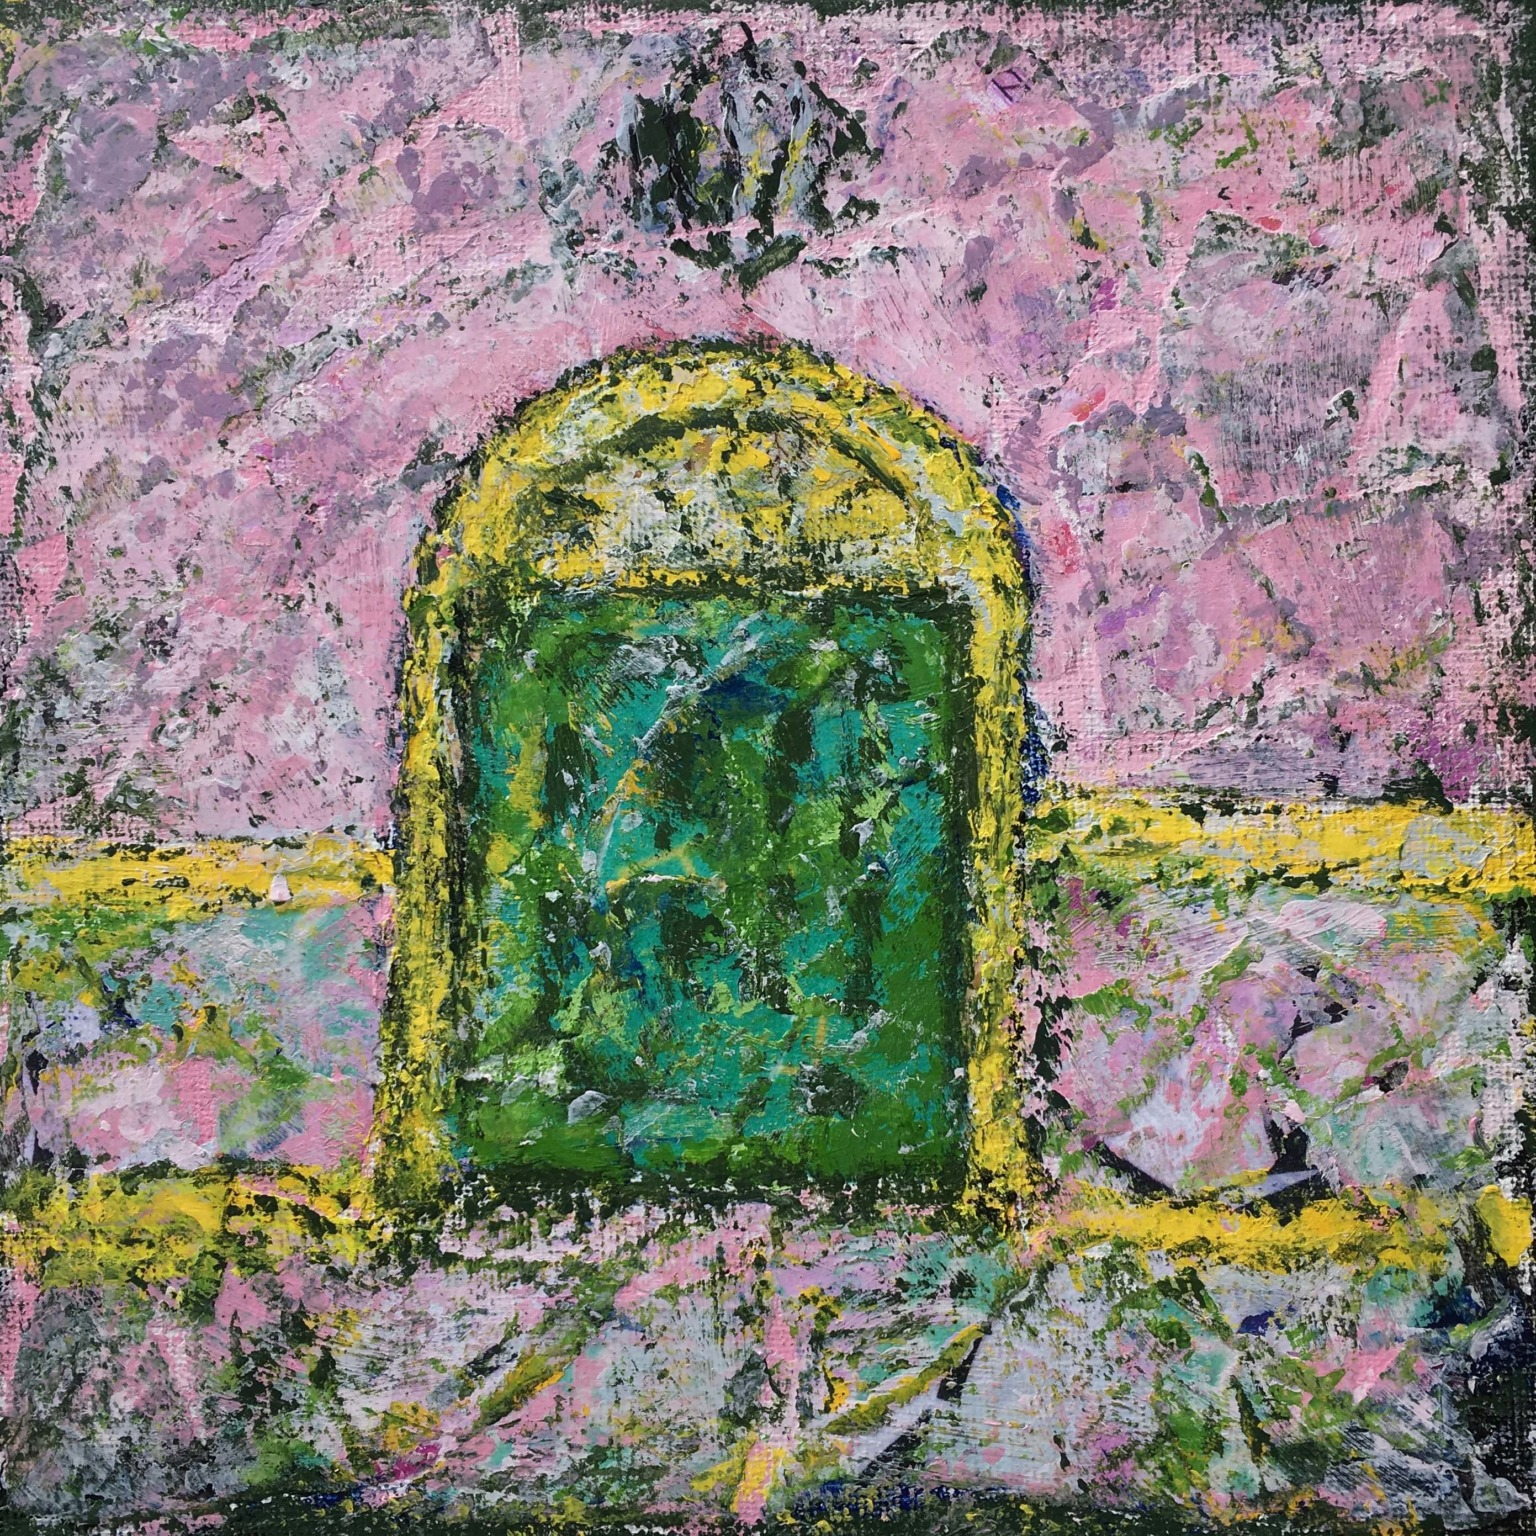 """Lynne Forrester, Artist: Smile Door (mixed media painting on canvas board, 20x20cm/8""""x8"""")"""